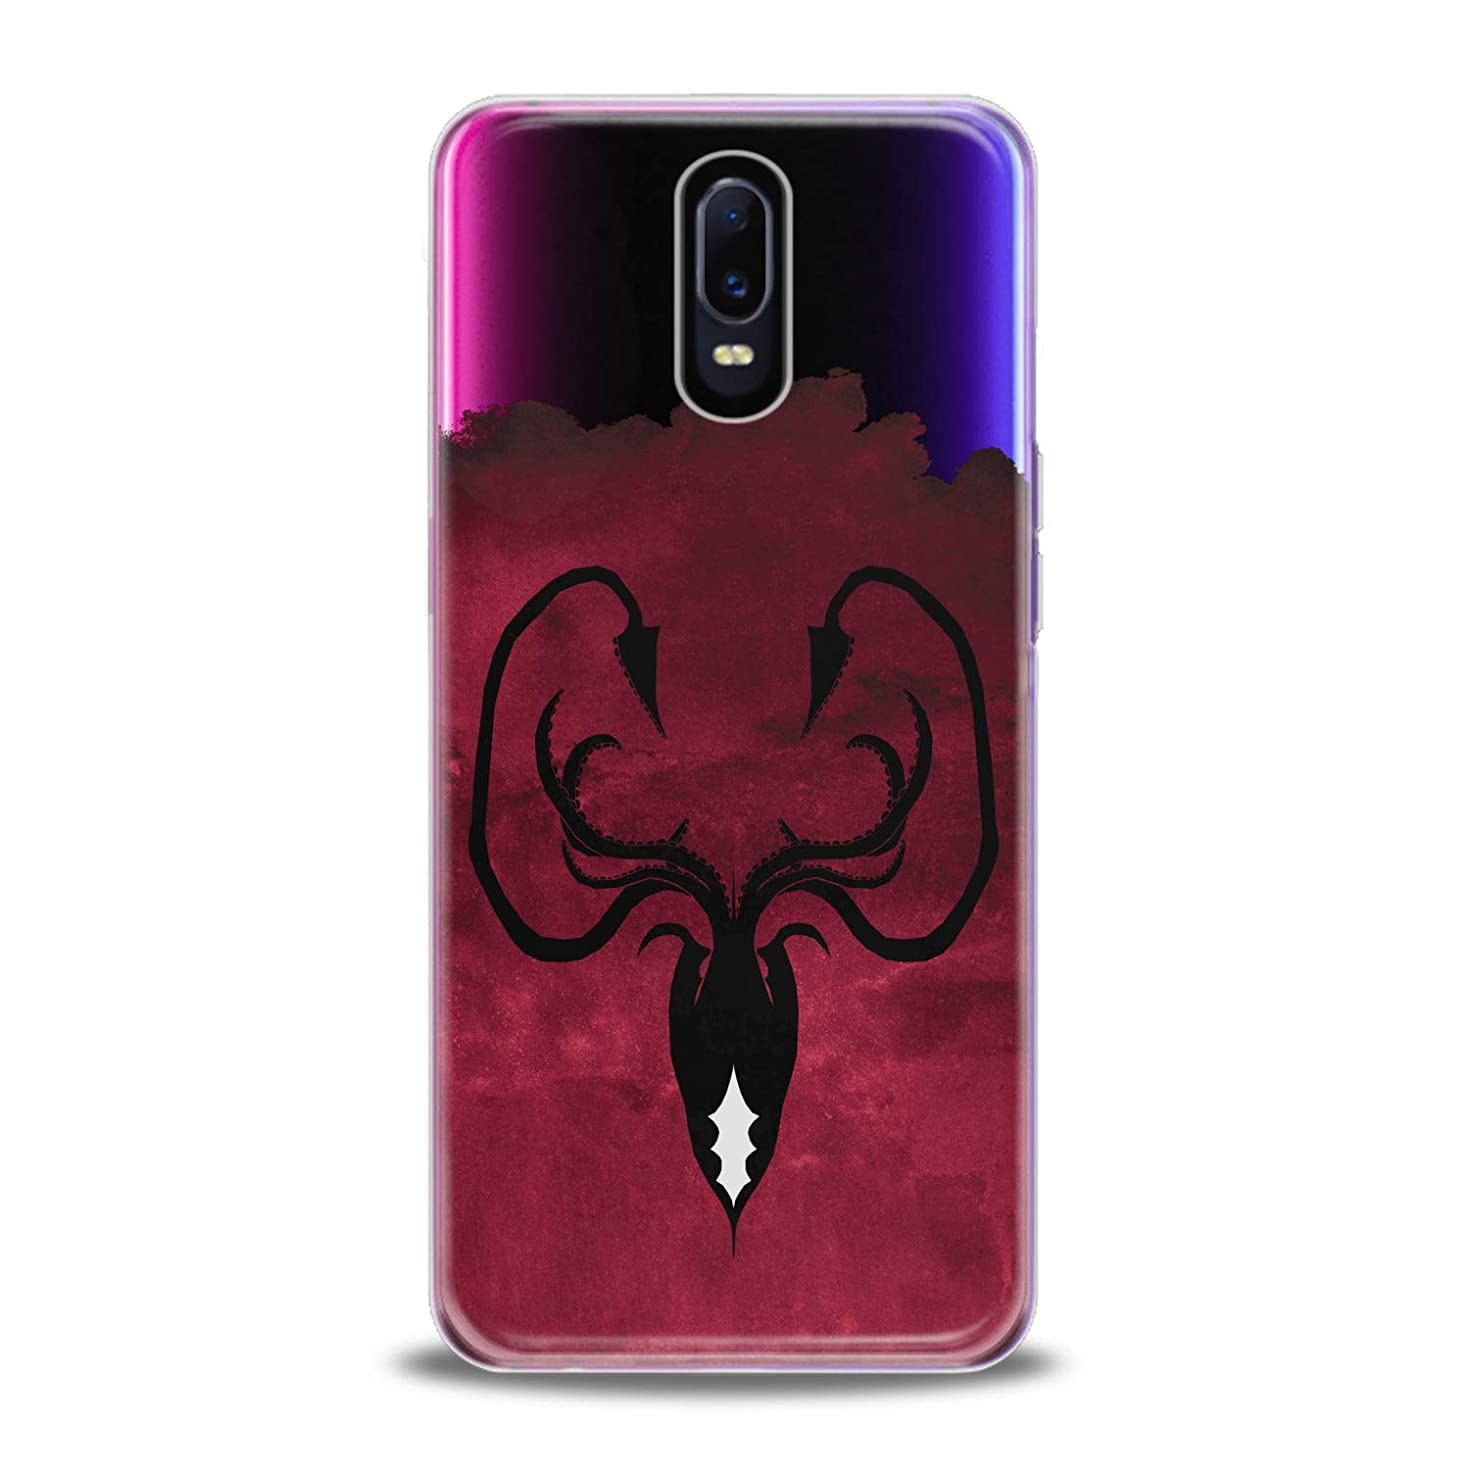 Lex Altern TPU Case for Oppo R17 F11 Realme 2 Pro 1 R15 F7 F9 K1 A7x Greyjoy Flexible Octopus Symbol Gift Smooth Black Print Slim fit Game of Thrones Cover Soft Clear Red Design Kingdoms Lightweight